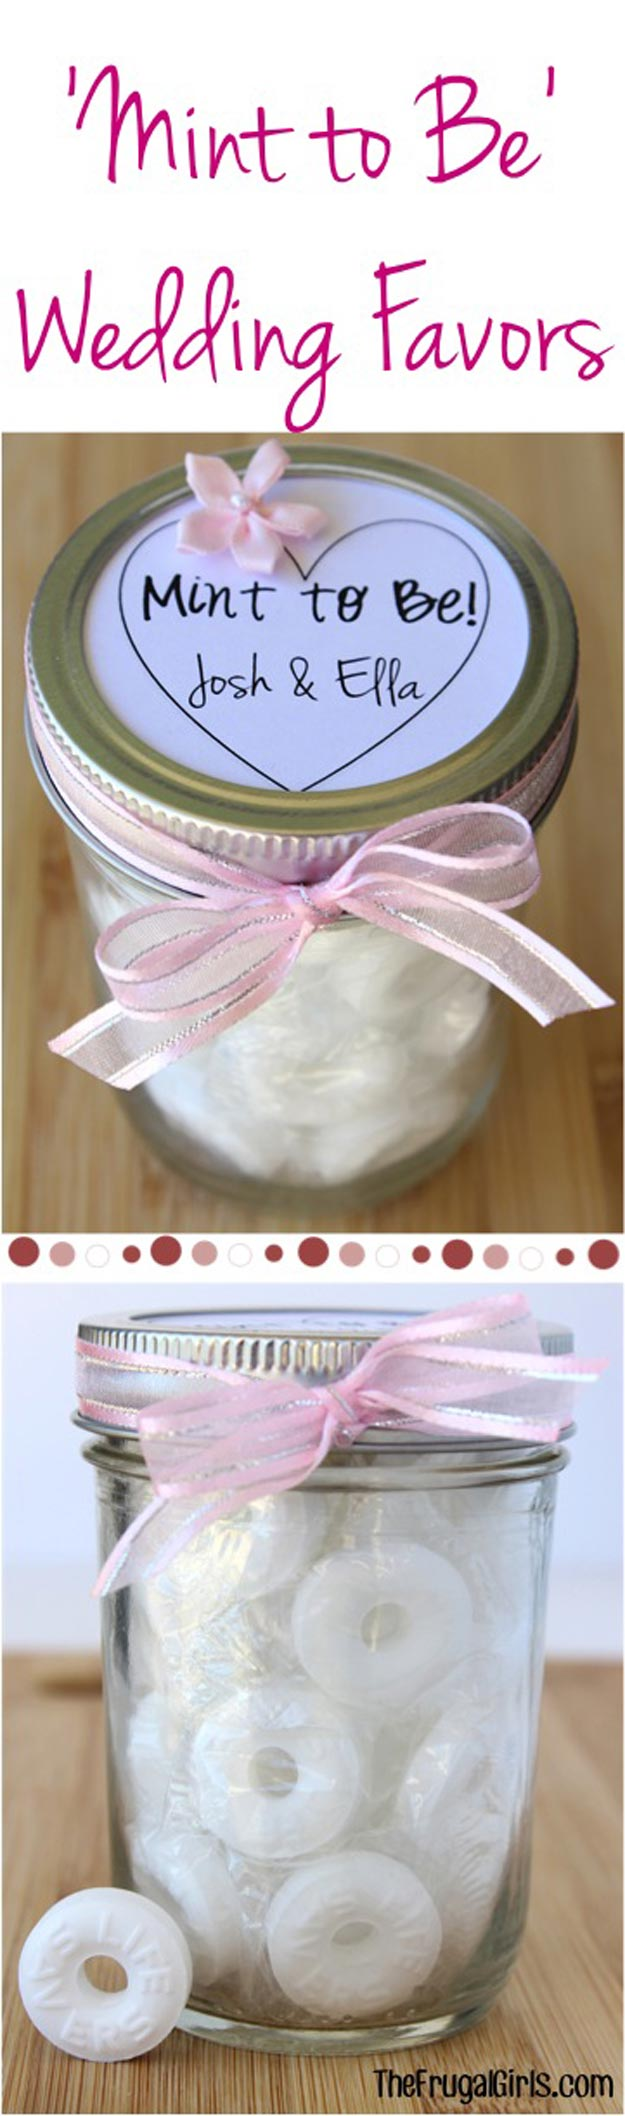 Homemade DIY Gifts in A Jar | Best Mason Jar Cookie Mixes and Recipes, Alcohol Mixers | Fun Gift Ideas for Men, Women, Teens, Kids, Teacher, Mom. Christmas, Holiday, Birthday and Easy Last Minute Gifts | Mint To Be Wedding Favors Gift in a Jar |  http://diyjoy.com/diy-gifts-in-a-jar